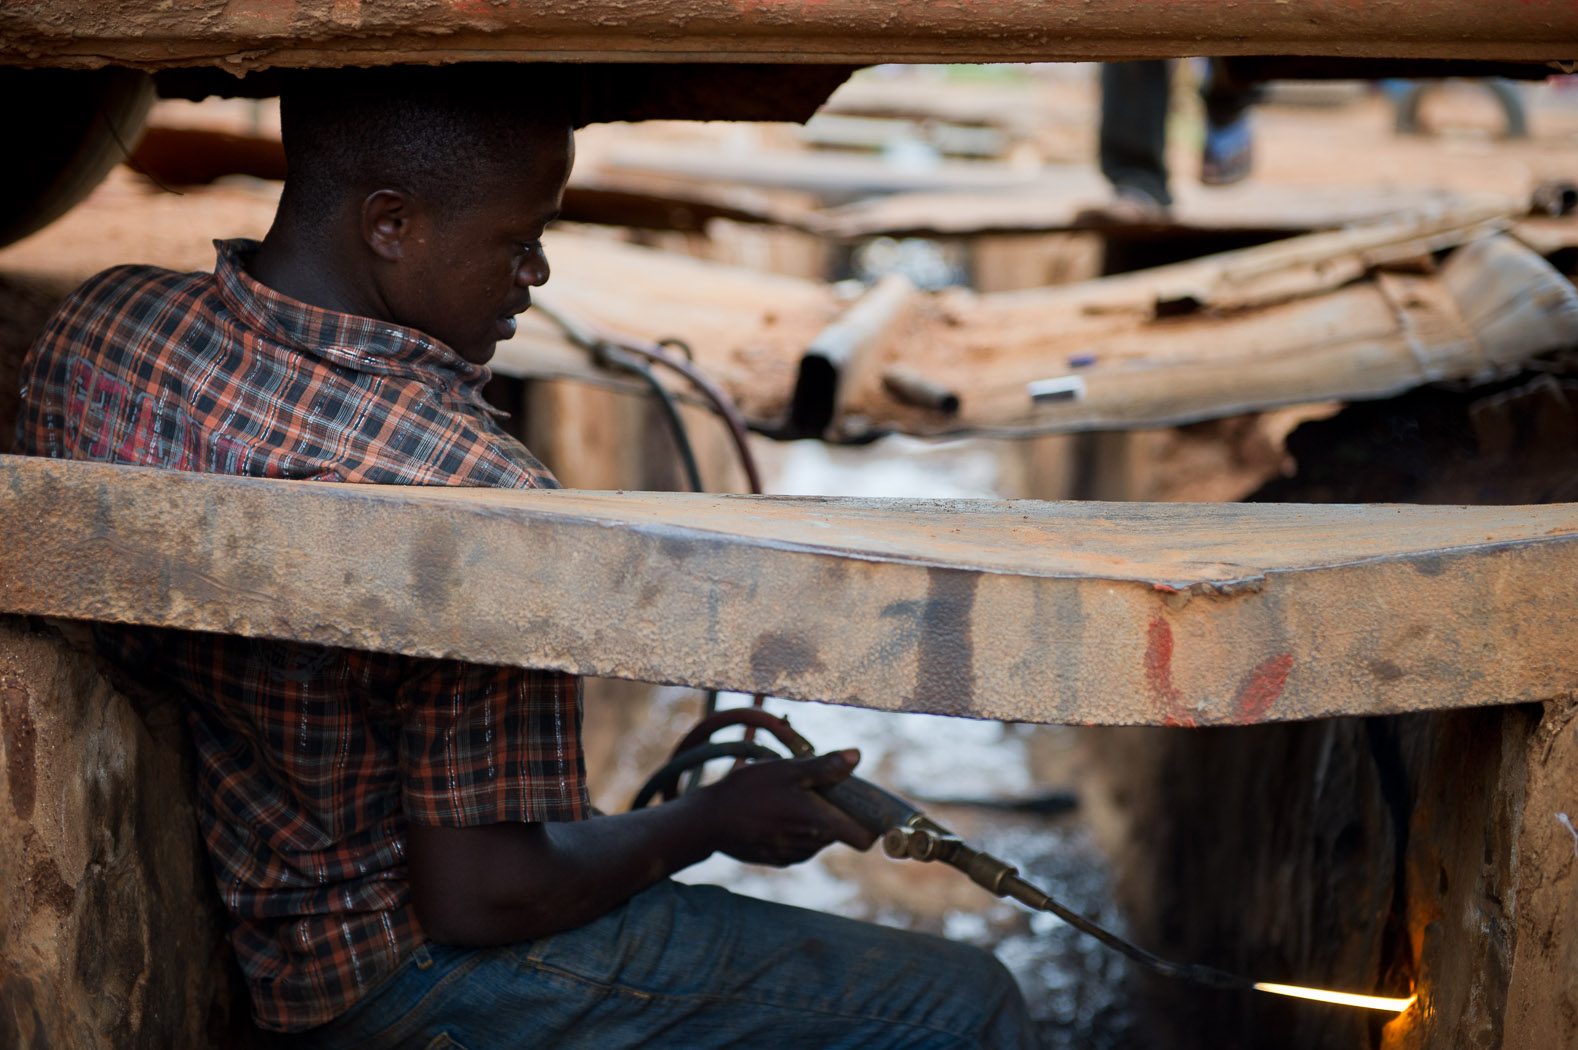 A man uses a drainage canal to work on a minibus. The Congo has some of the lowest development indicators in the world.